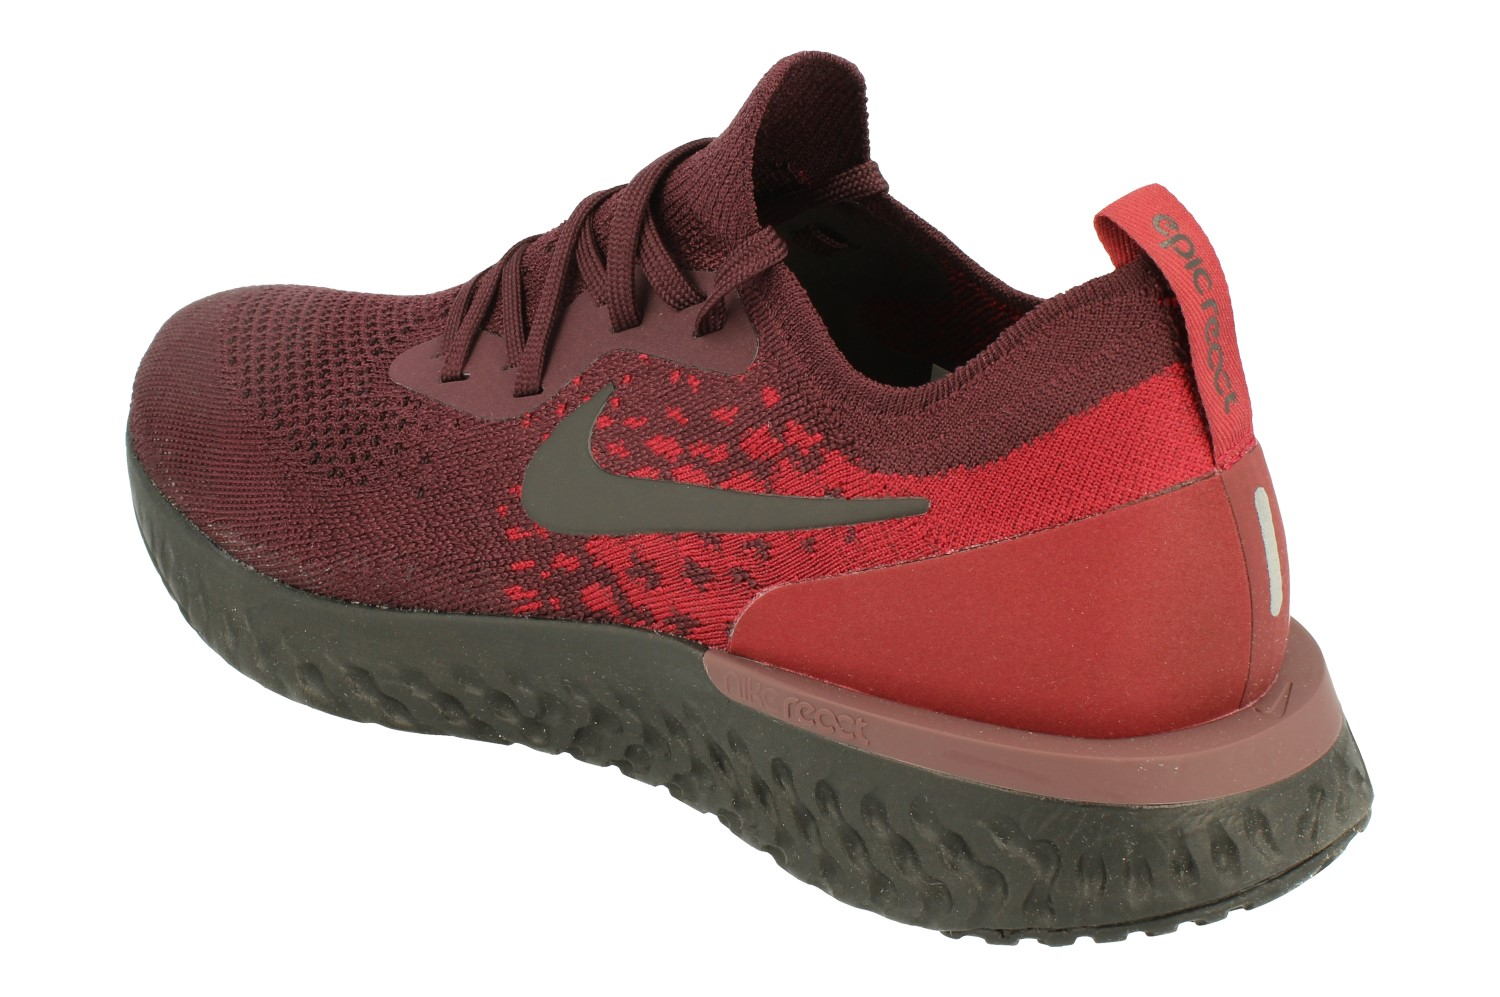 ec90d2a386fa7 Nike Epic React Flyknit Mens Running Trainers At0054(Deep Burgundy ...